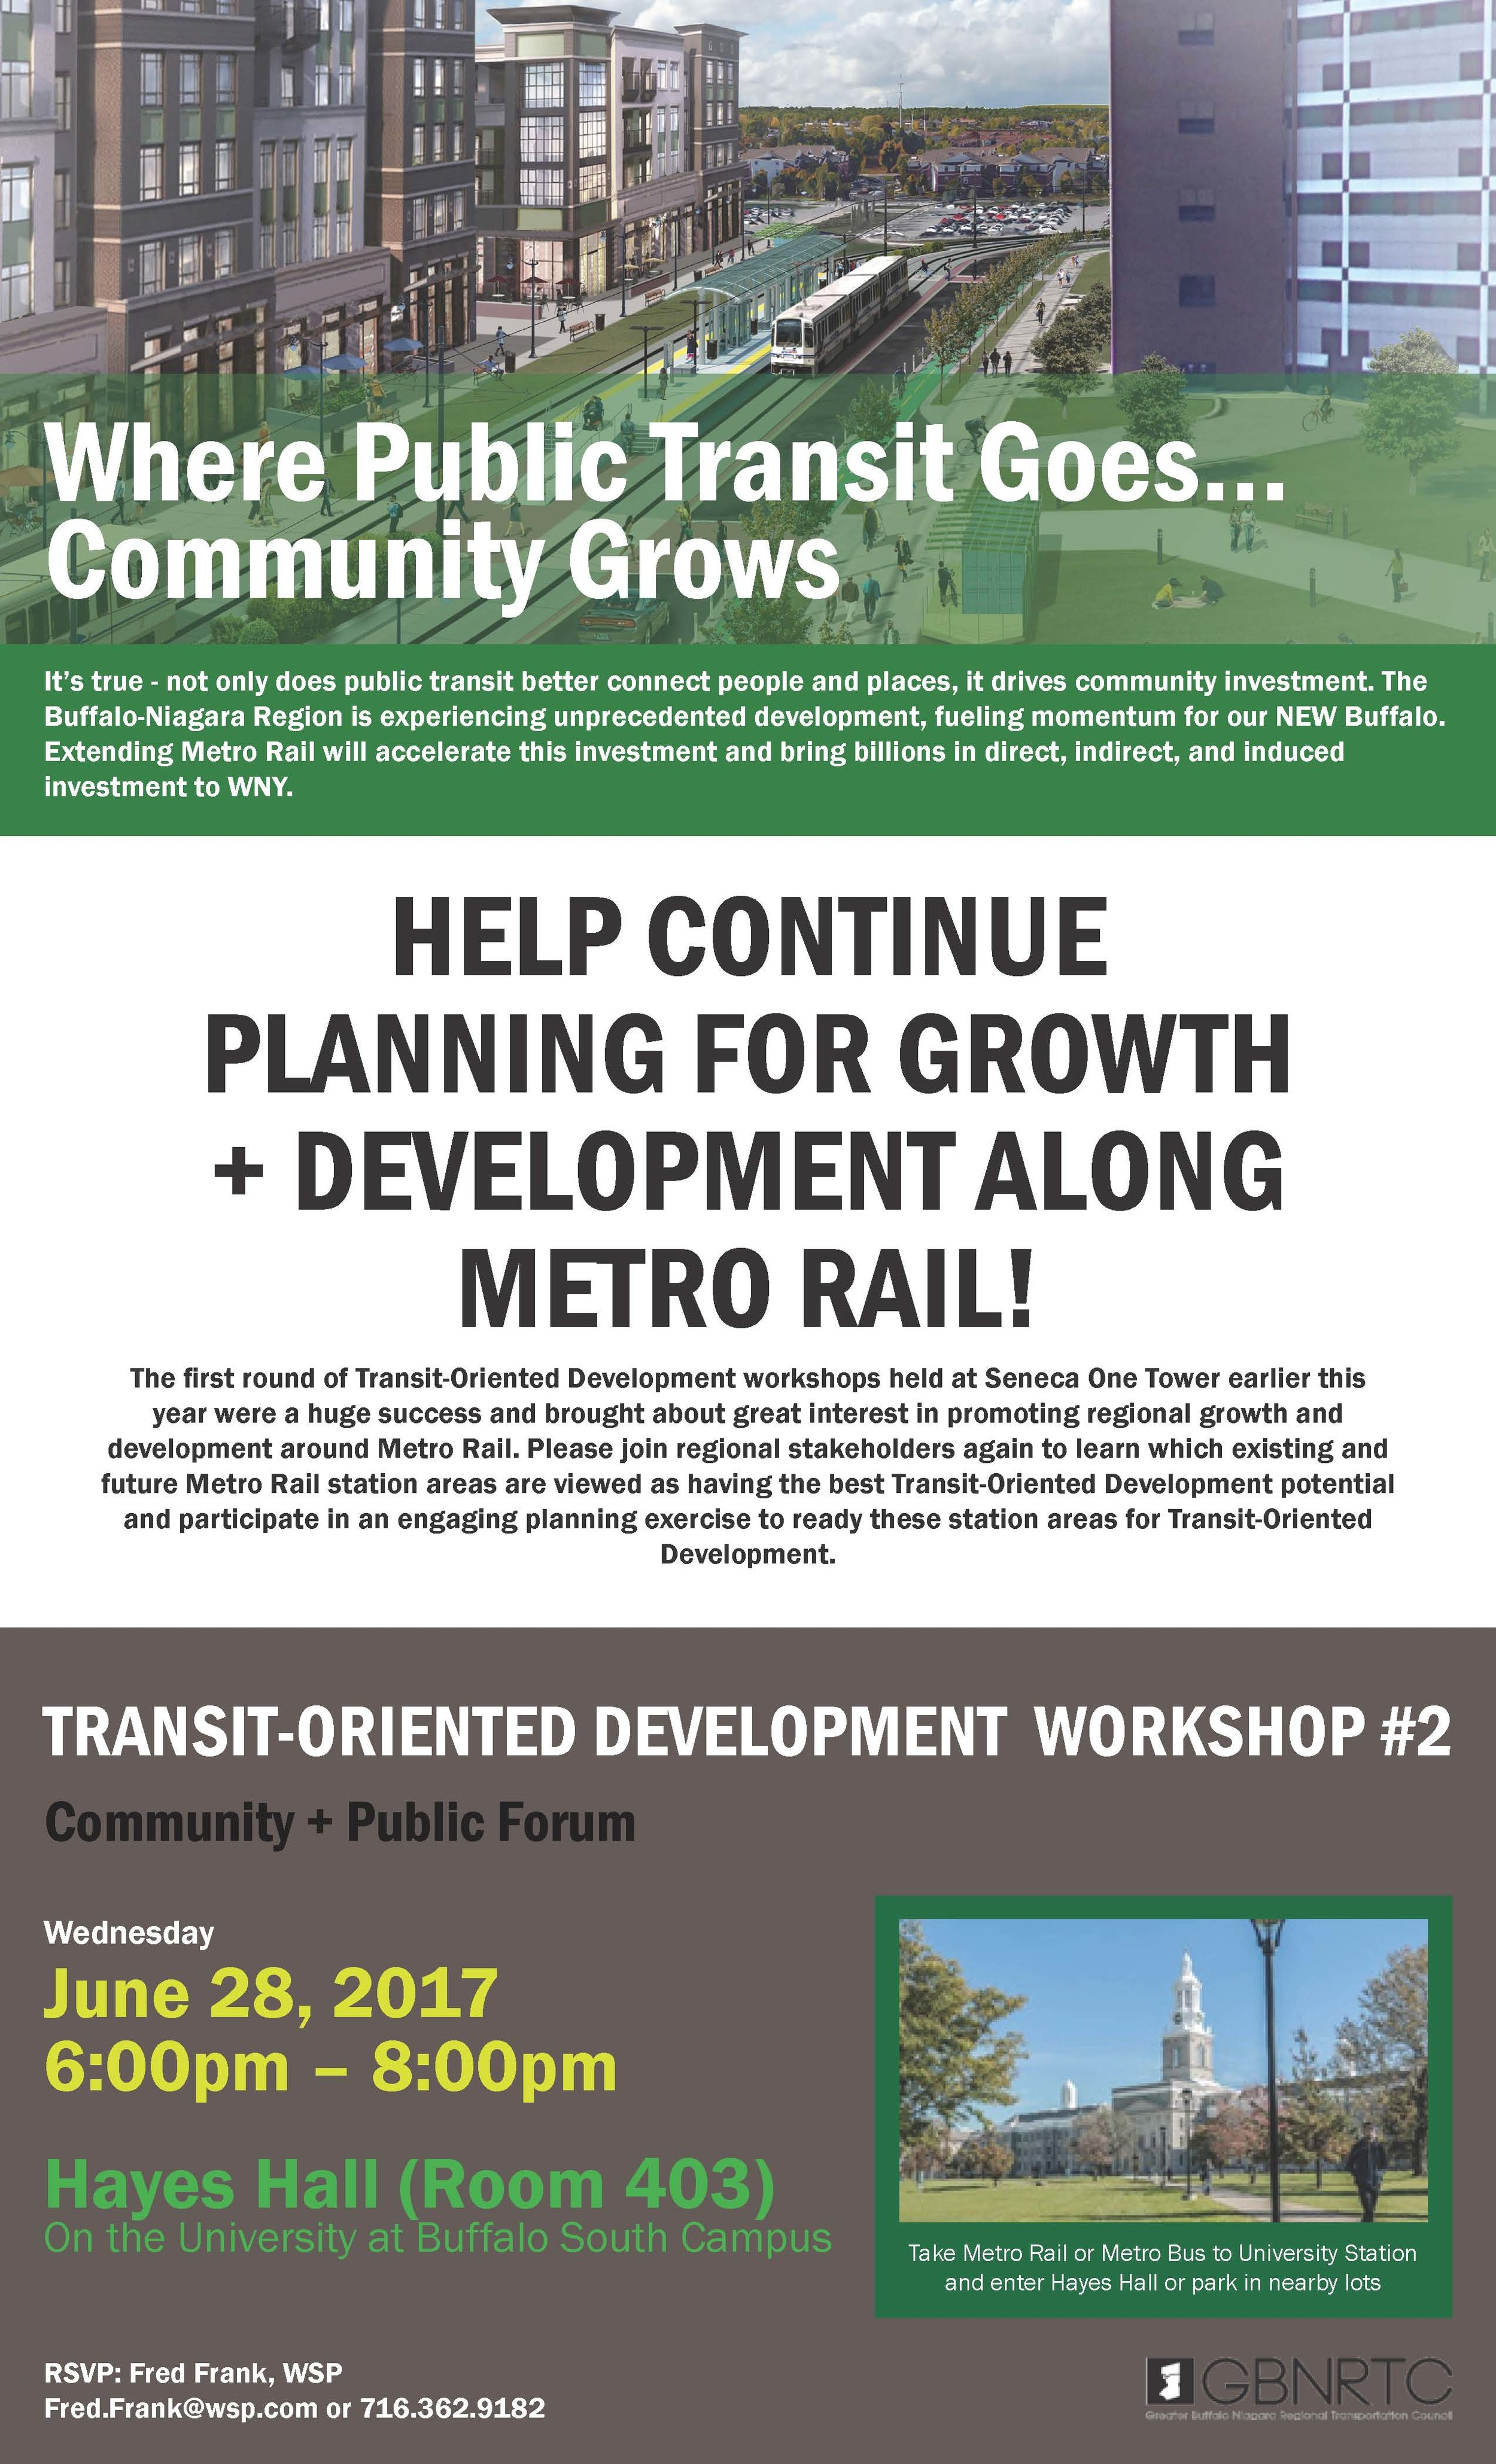 TRANSIT-ORIENTED DEVELOPMENT WORKSHOP - COMMUNITY GROUPS AND PUBLIC SESSION